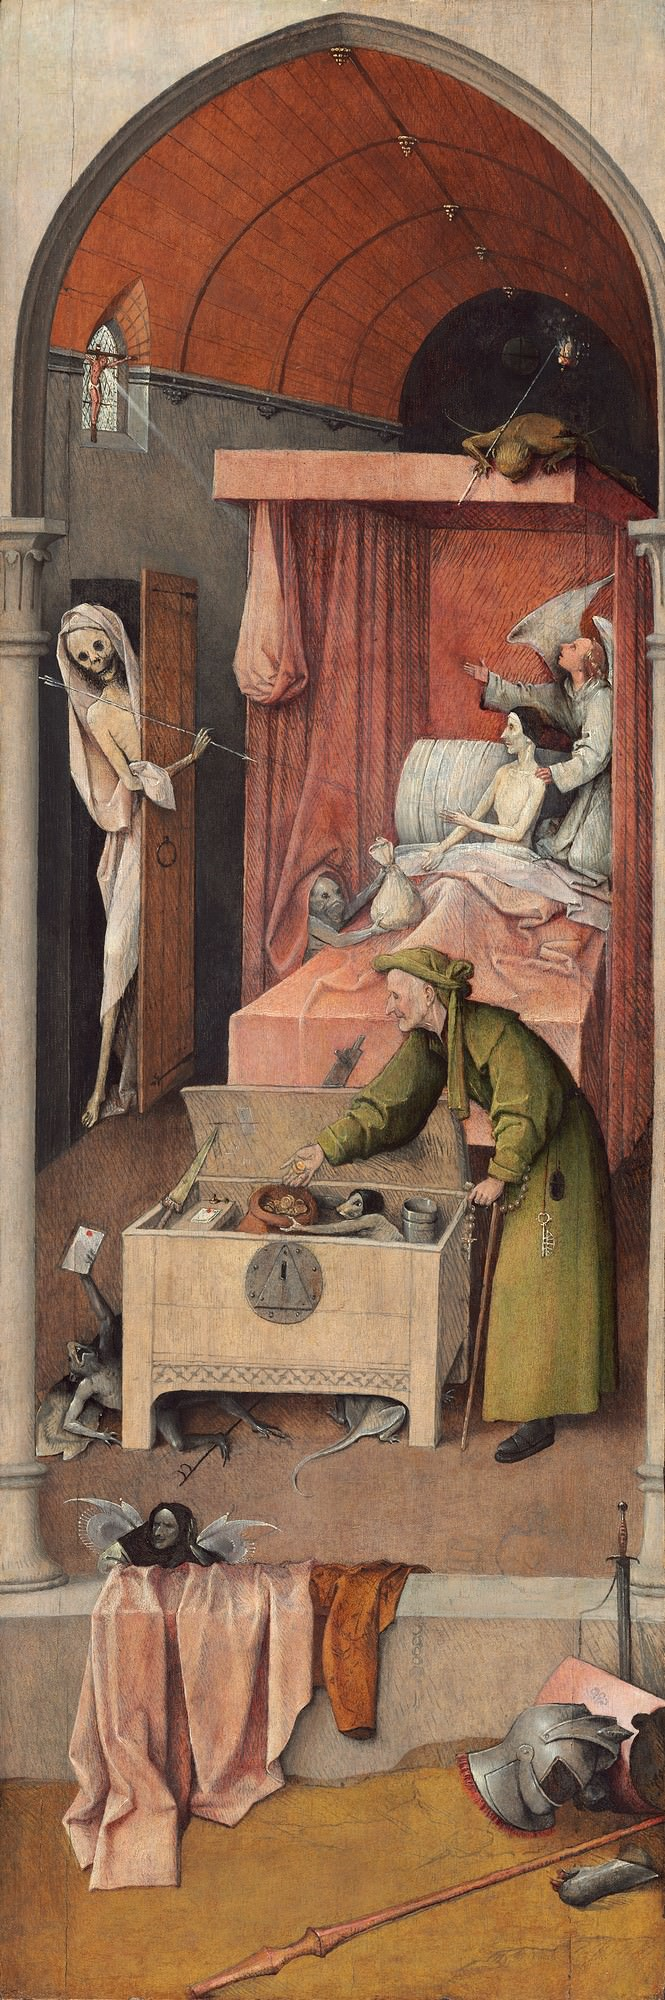 A Morte e o Avarento, 1485/1490, Hieronymus Bosch (Netherlandish, c. 1450 - 1516 ). Samuel H. Kress Collection.